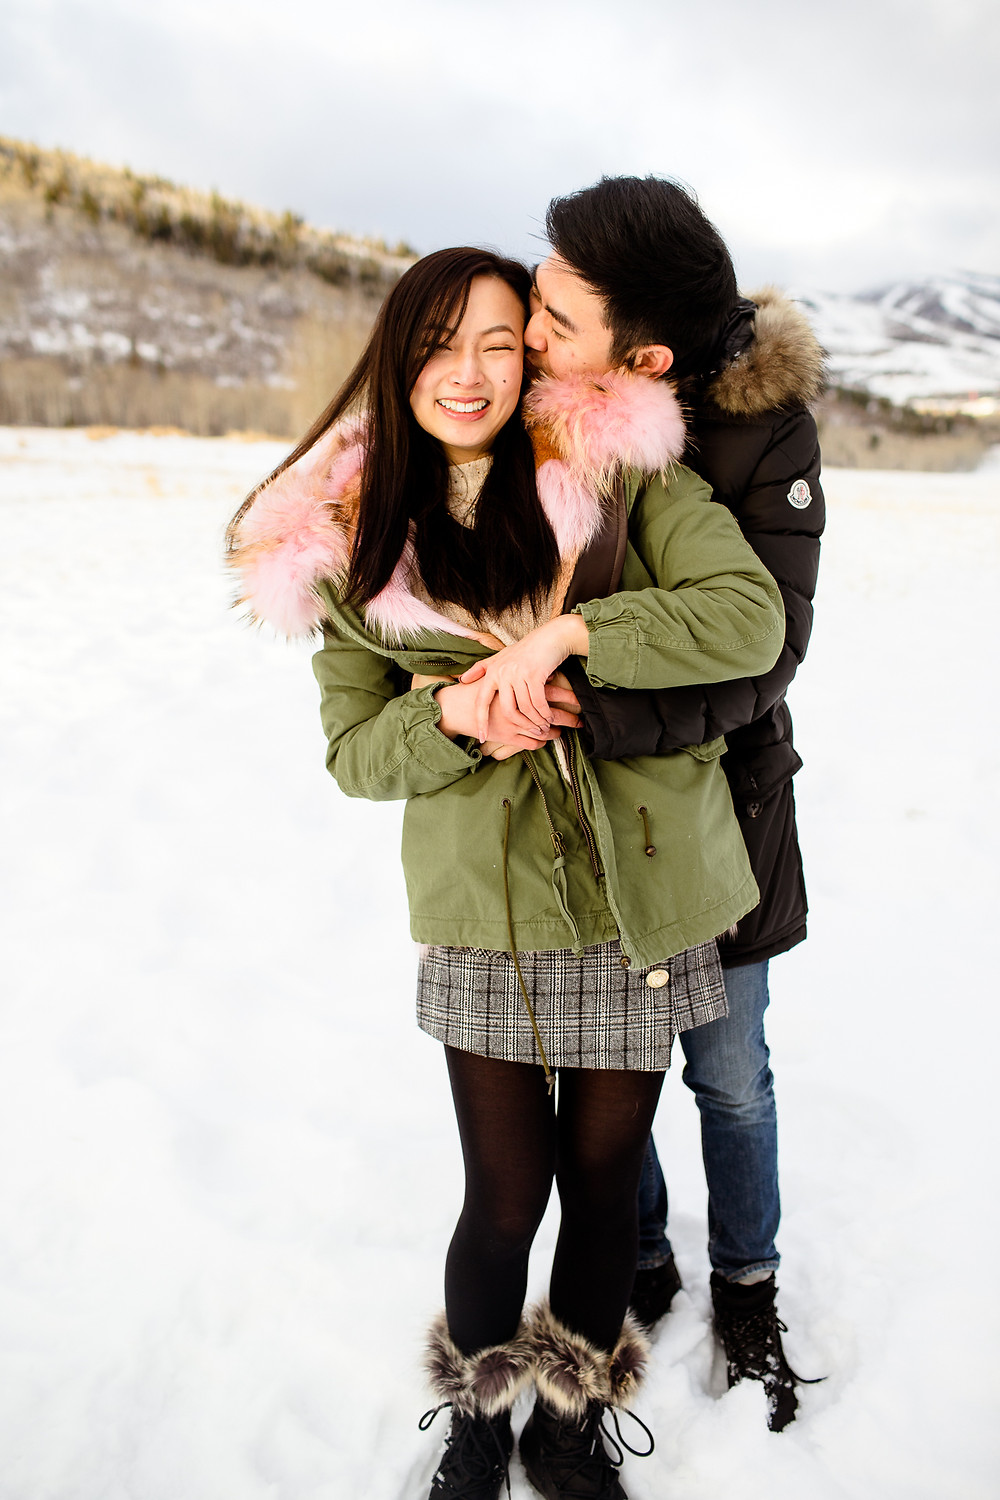 man kisses woman's cheek while hugging her from behind